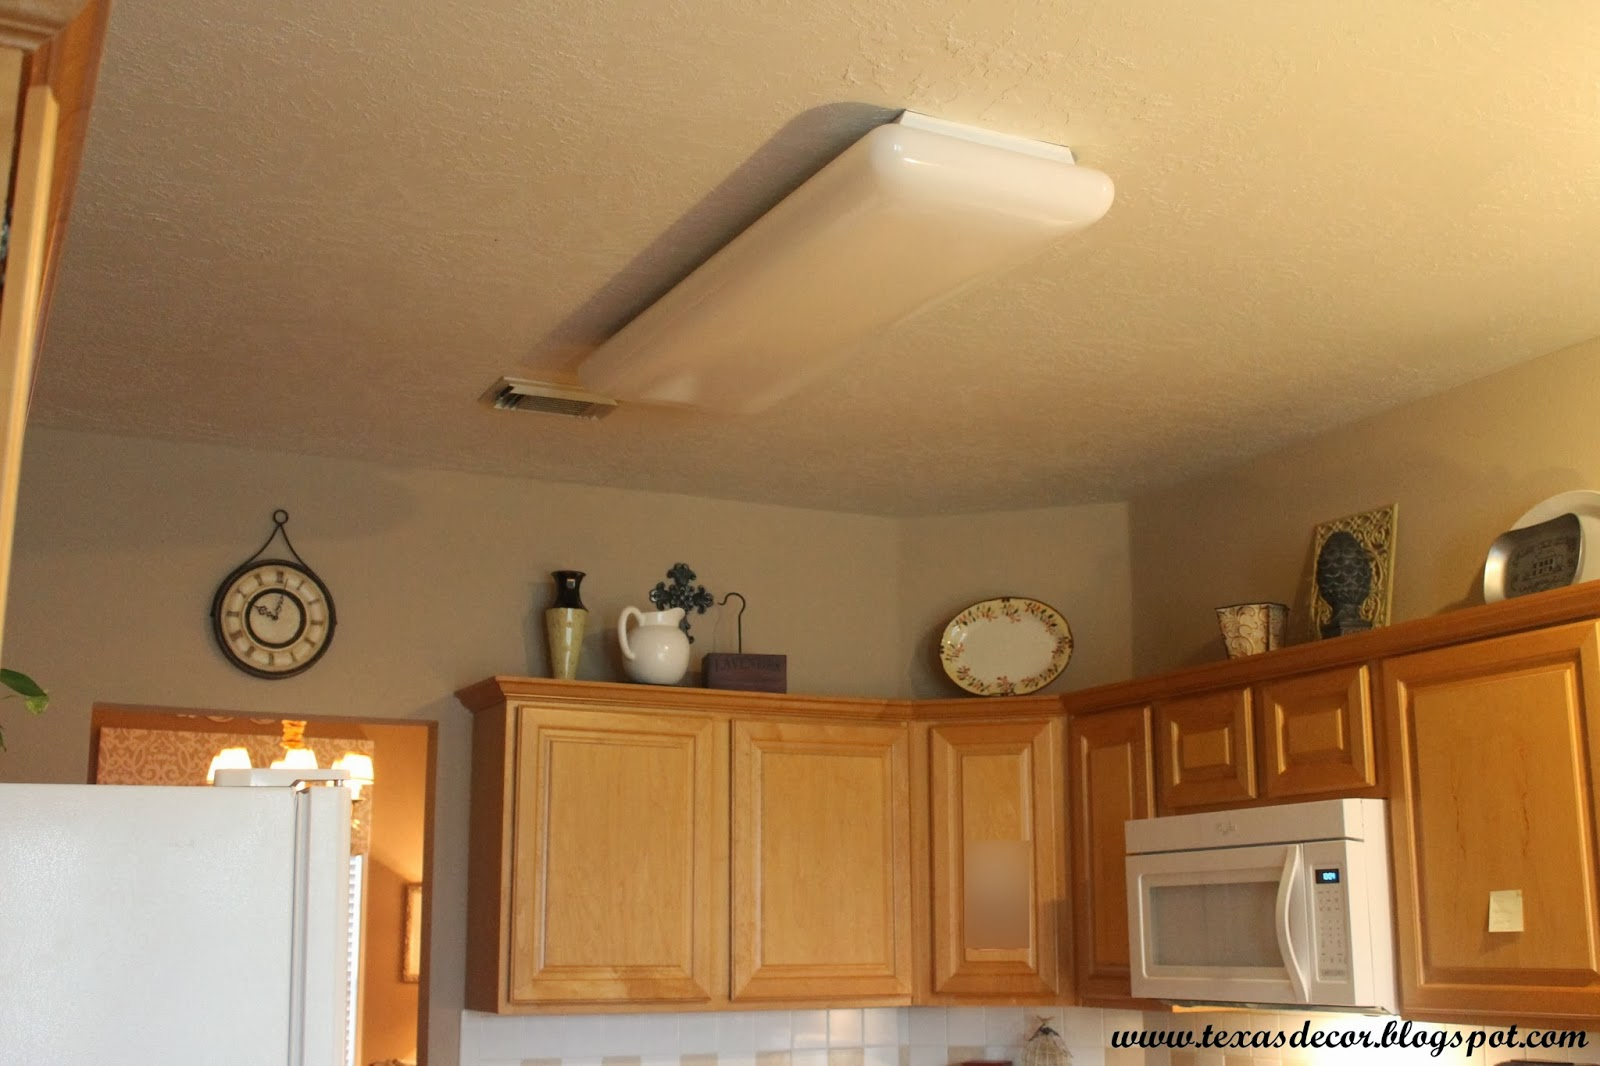 Replace Fluorescent Light Fixture In Kitchen Bobs Furniture Island Texas Decor A New